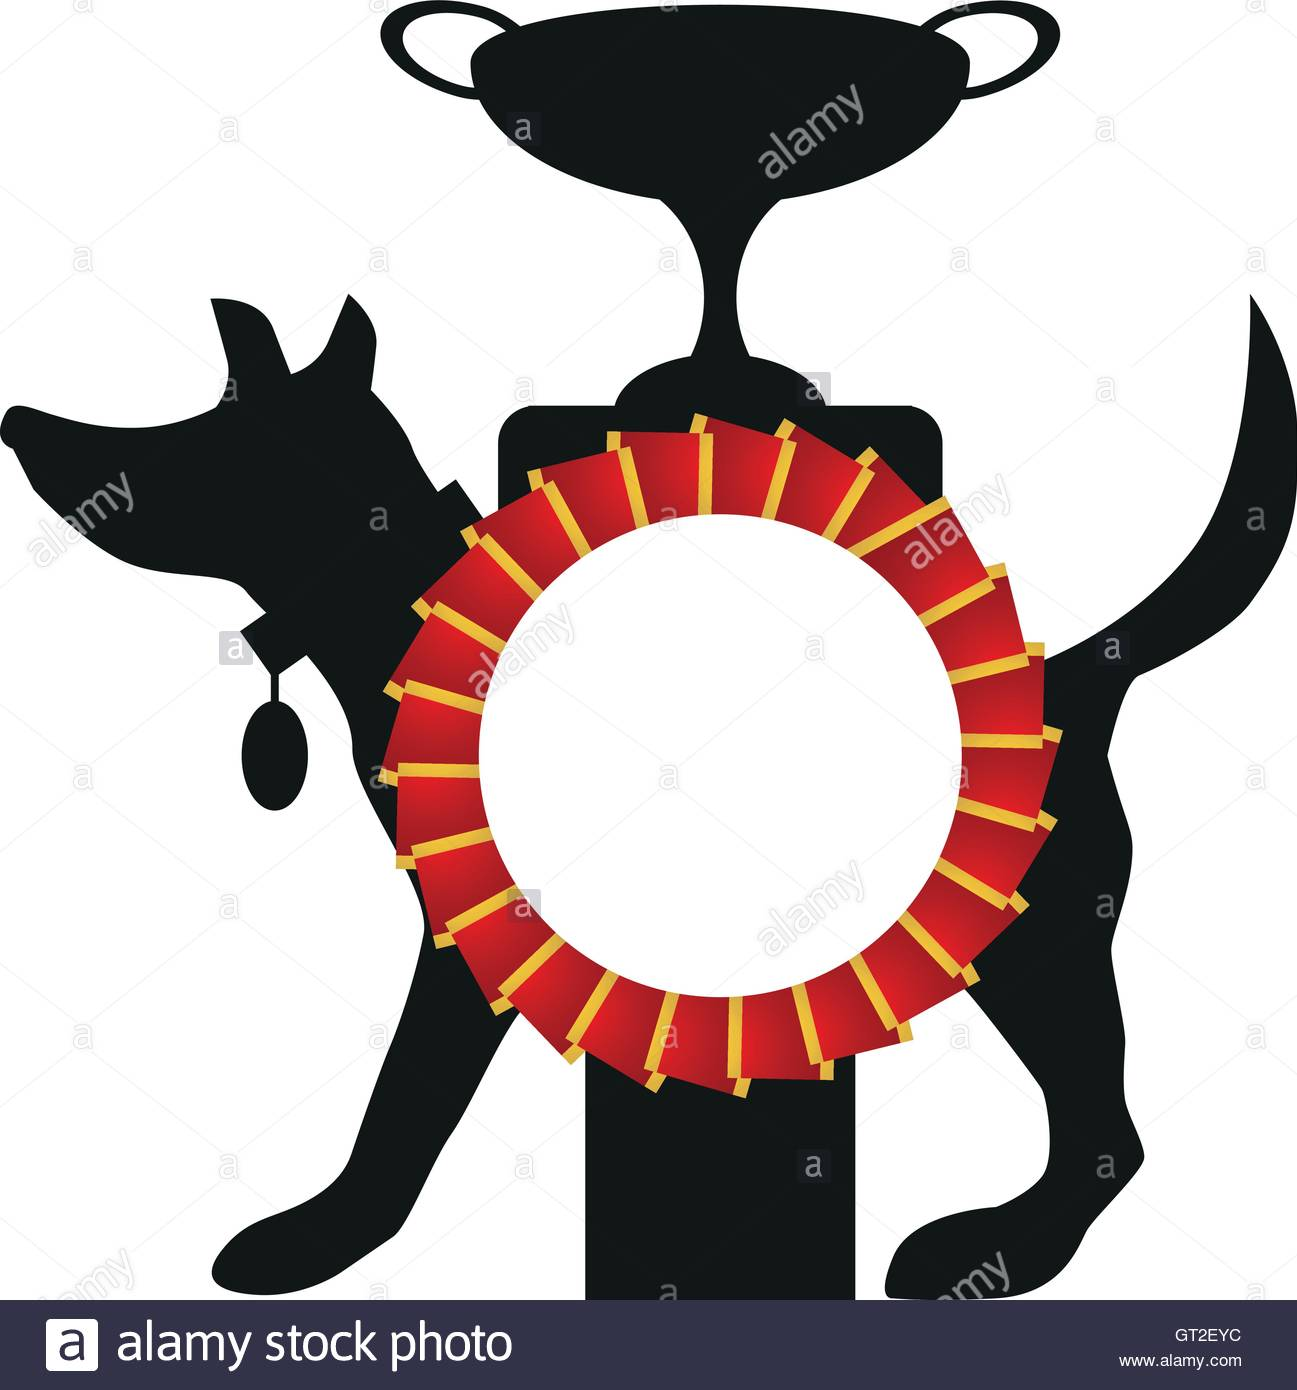 Award clipart dog. Silhouette at getdrawings com